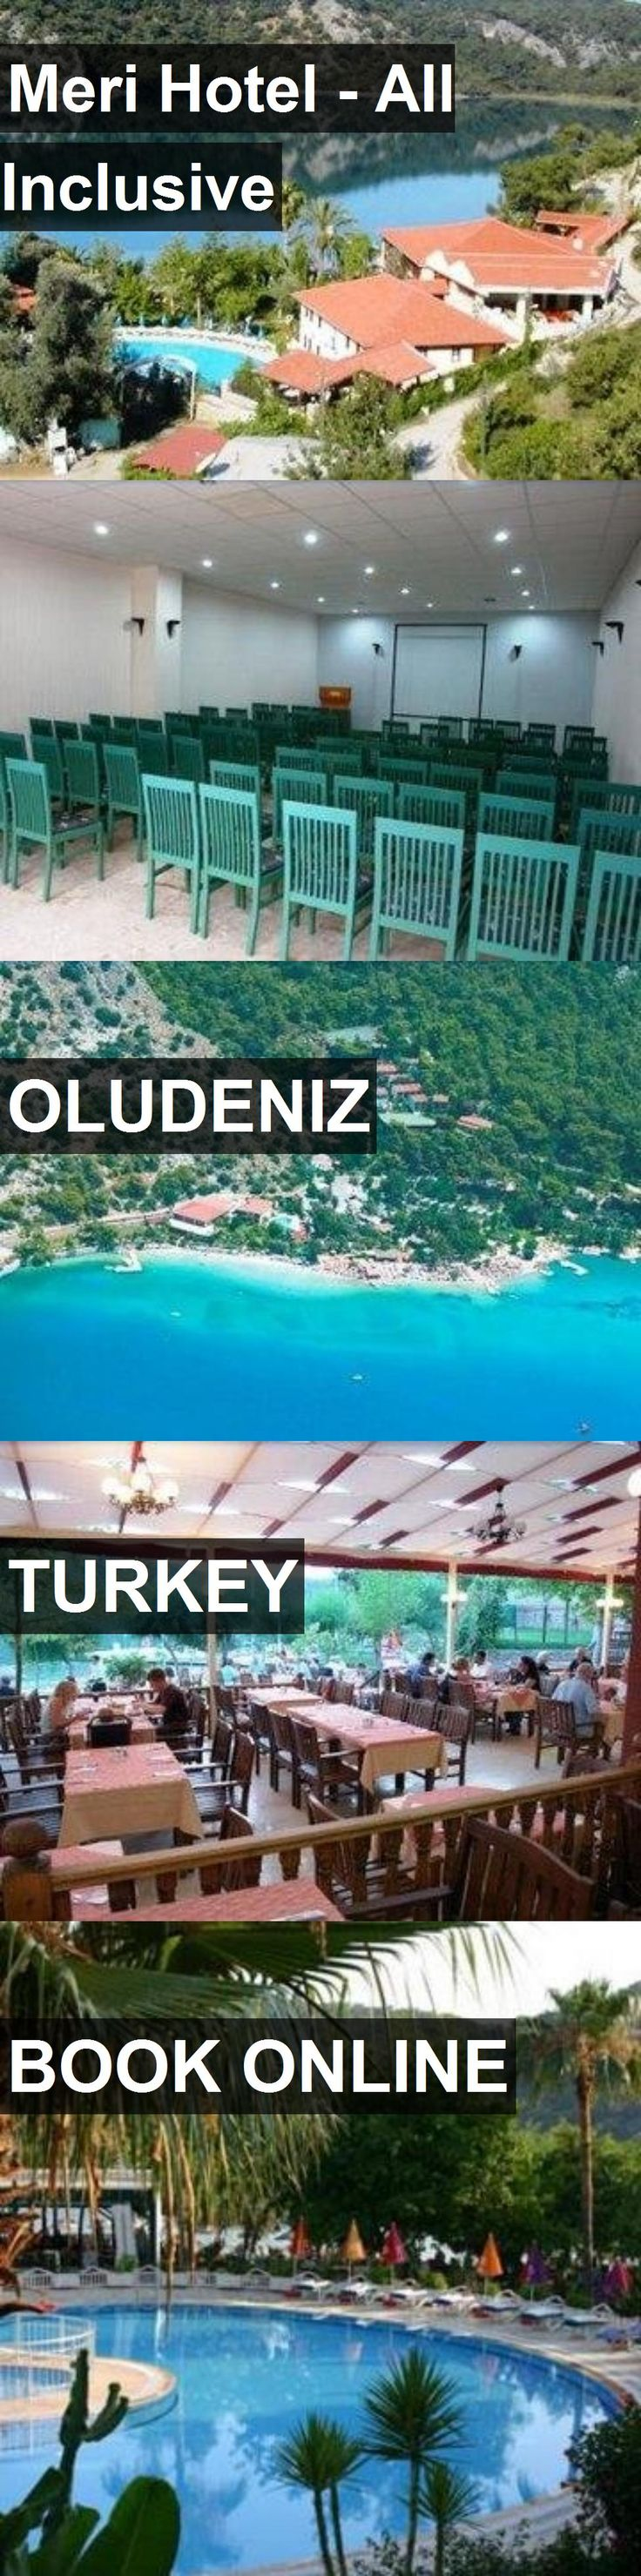 Hotel Meri Hotel - All Inclusive in Oludeniz, Turkey. For more information, photos, reviews and best prices please follow the link. #Turkey #Oludeniz #MeriHotel-AllInclusive #hotel #travel #vacation